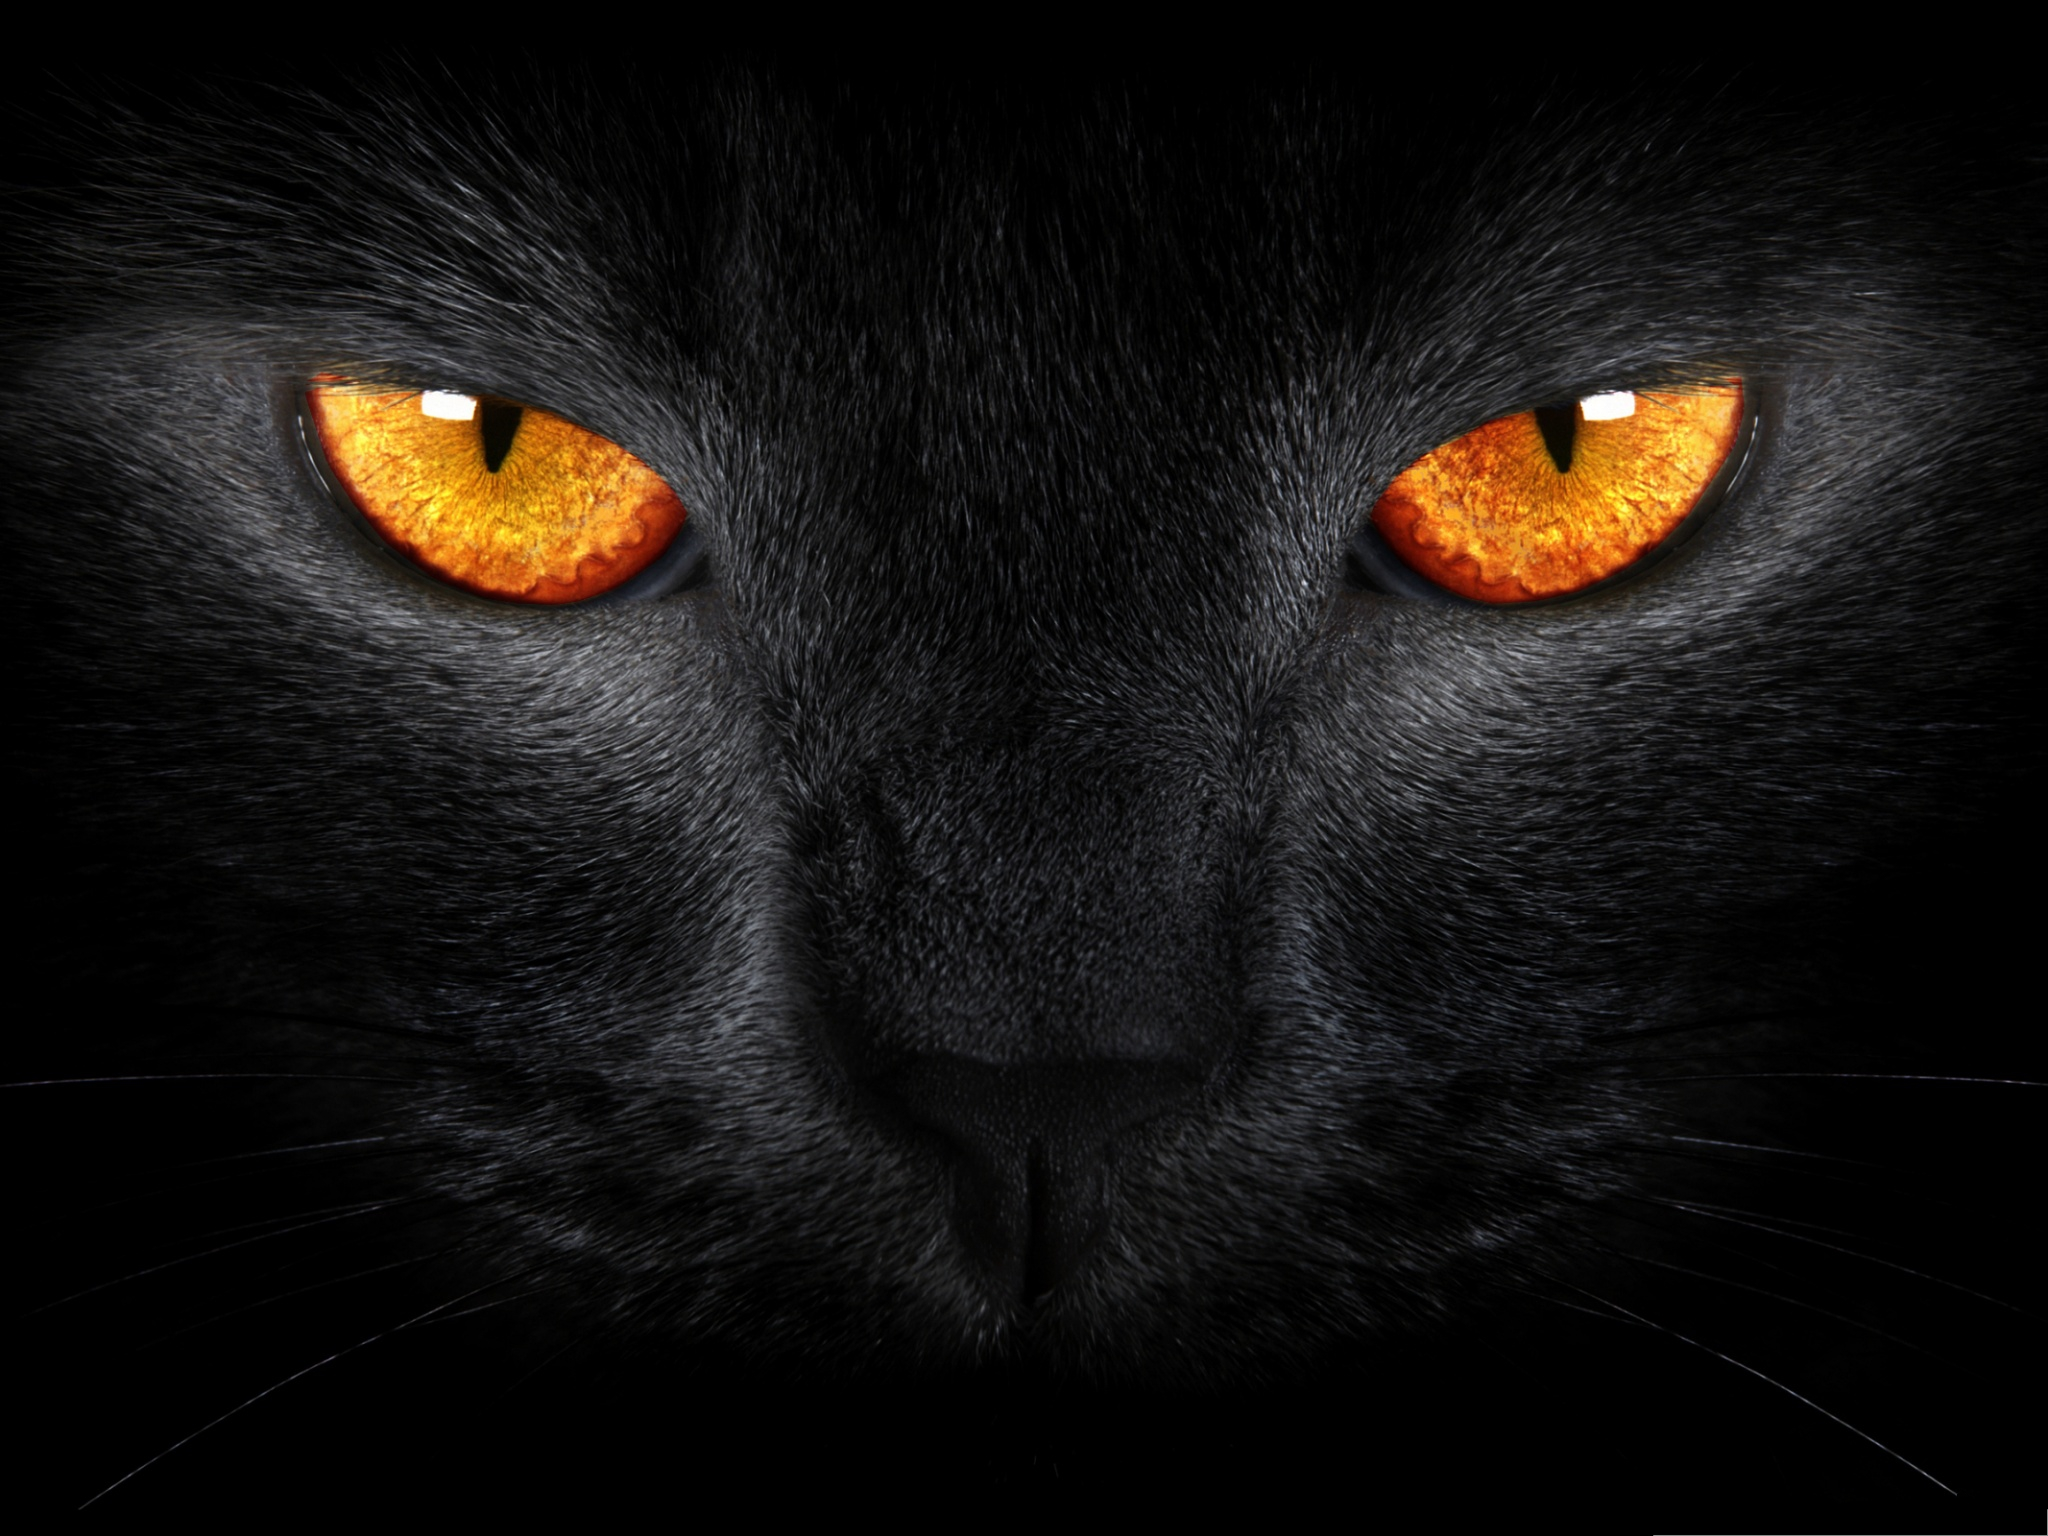 click to free download the wallpaper--Cute Cat Images, Black Cat in Smooth Fur, Golden Shinning Eyes 2048X1536 free wallpaper download